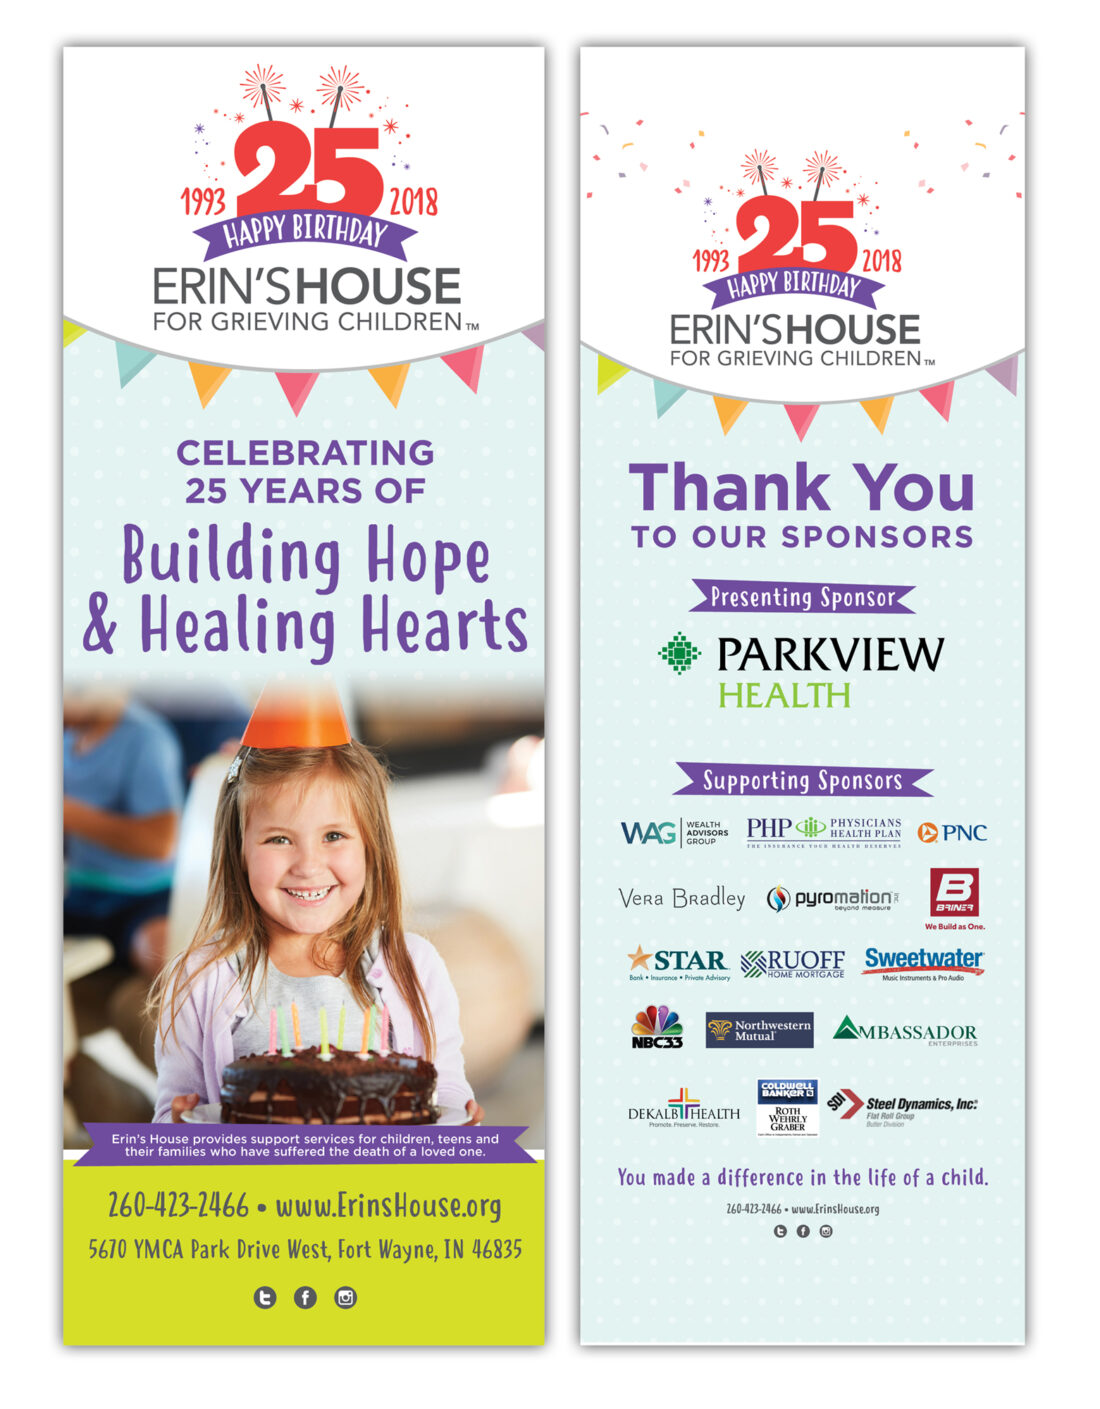 erin's house retractable banners